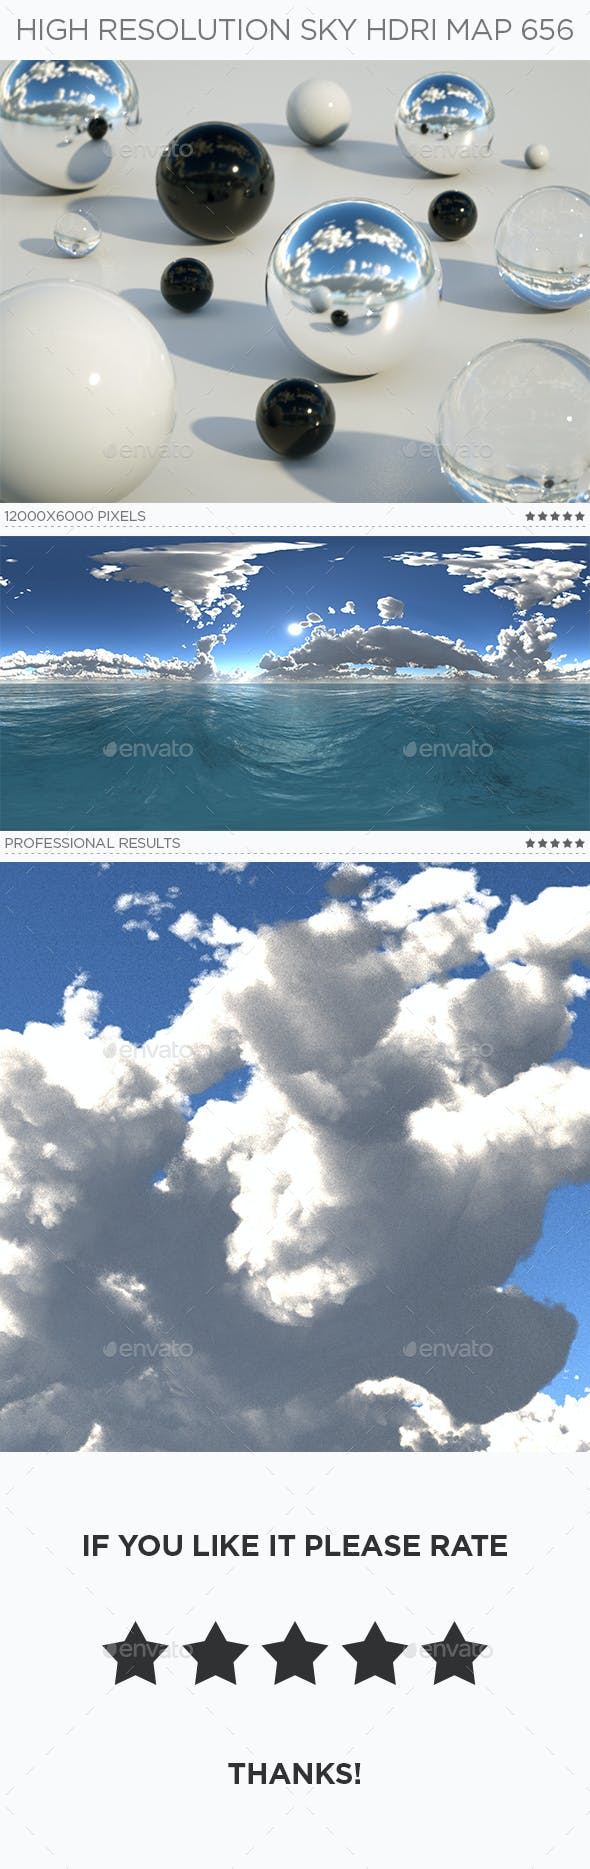 High Resolution Sky HDRi Map 656 - 3DOcean Item for Sale